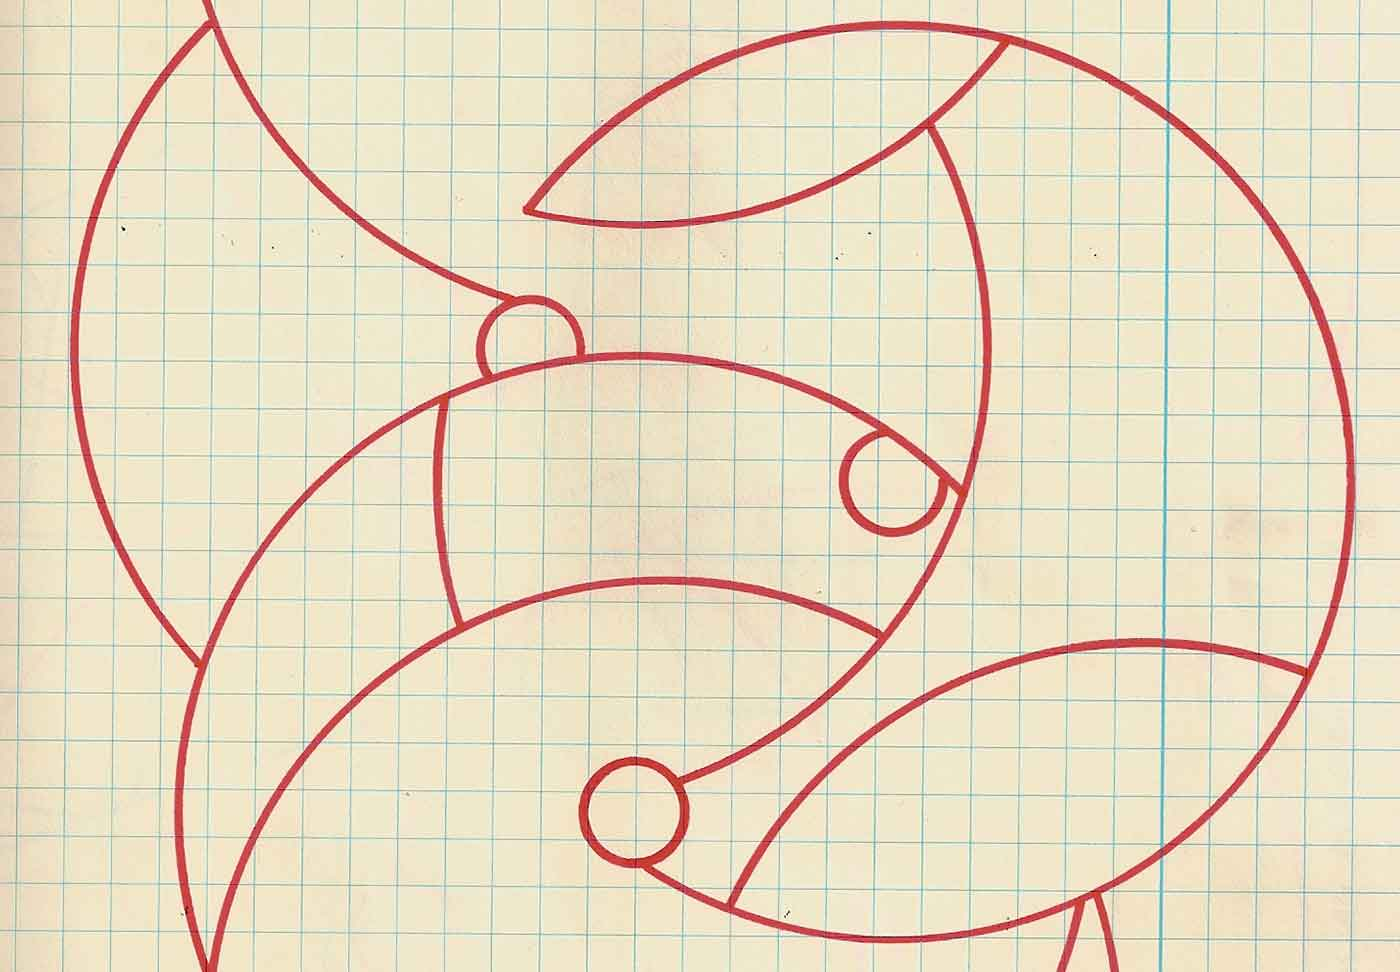 Graph paper with designs